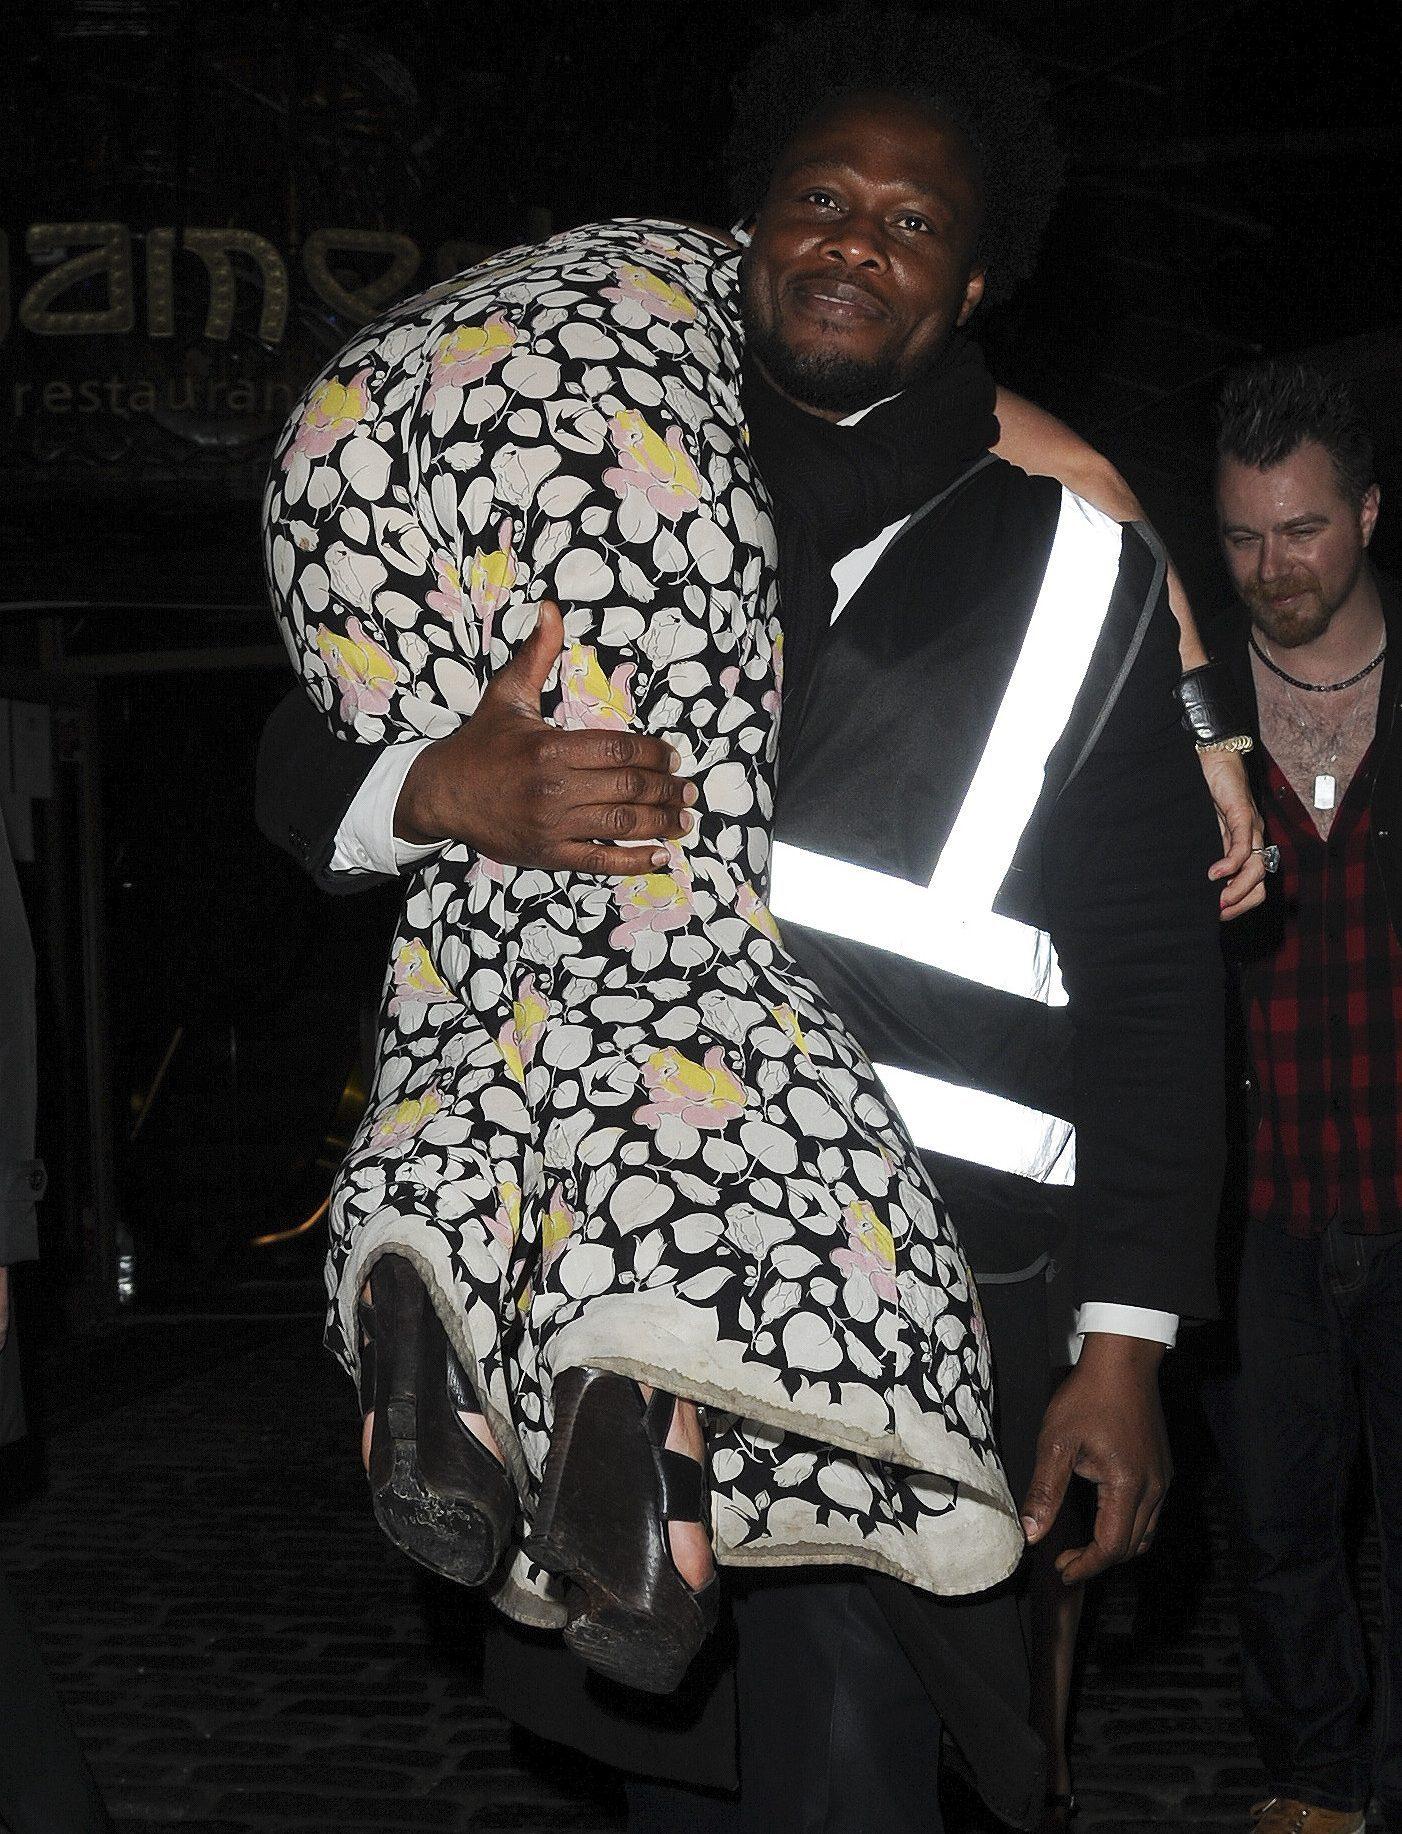 Jessie is carried out of a London club over a bouncer's shoulder after a drunken night out